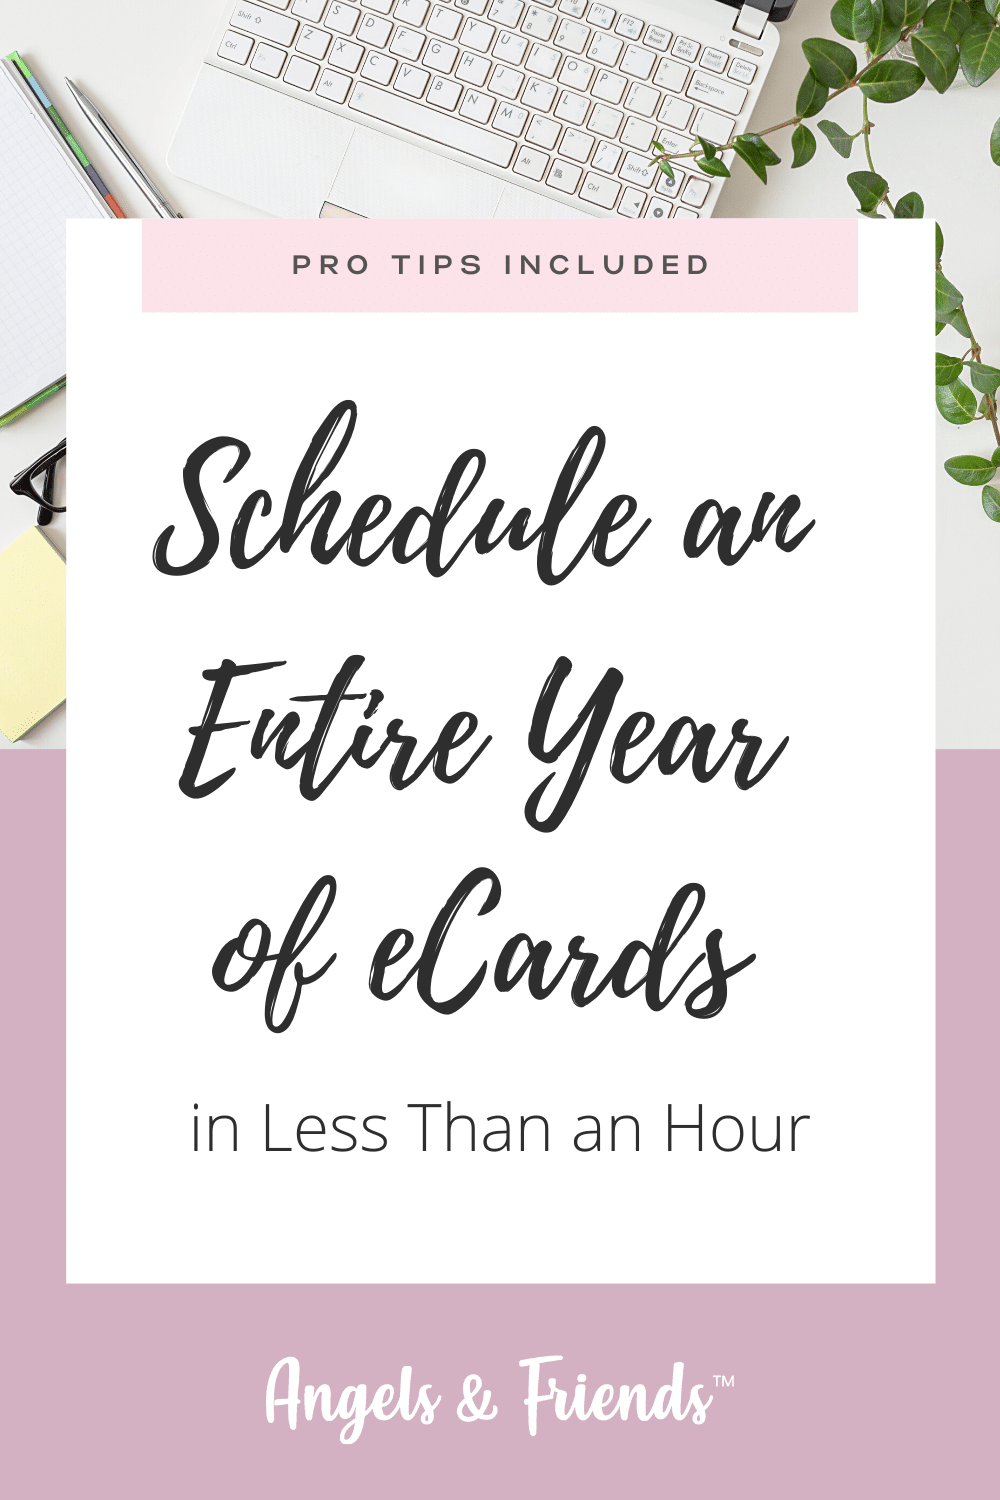 Schedule an Entire Year of eCards in Less Than an Hour Angels & Friends Blog